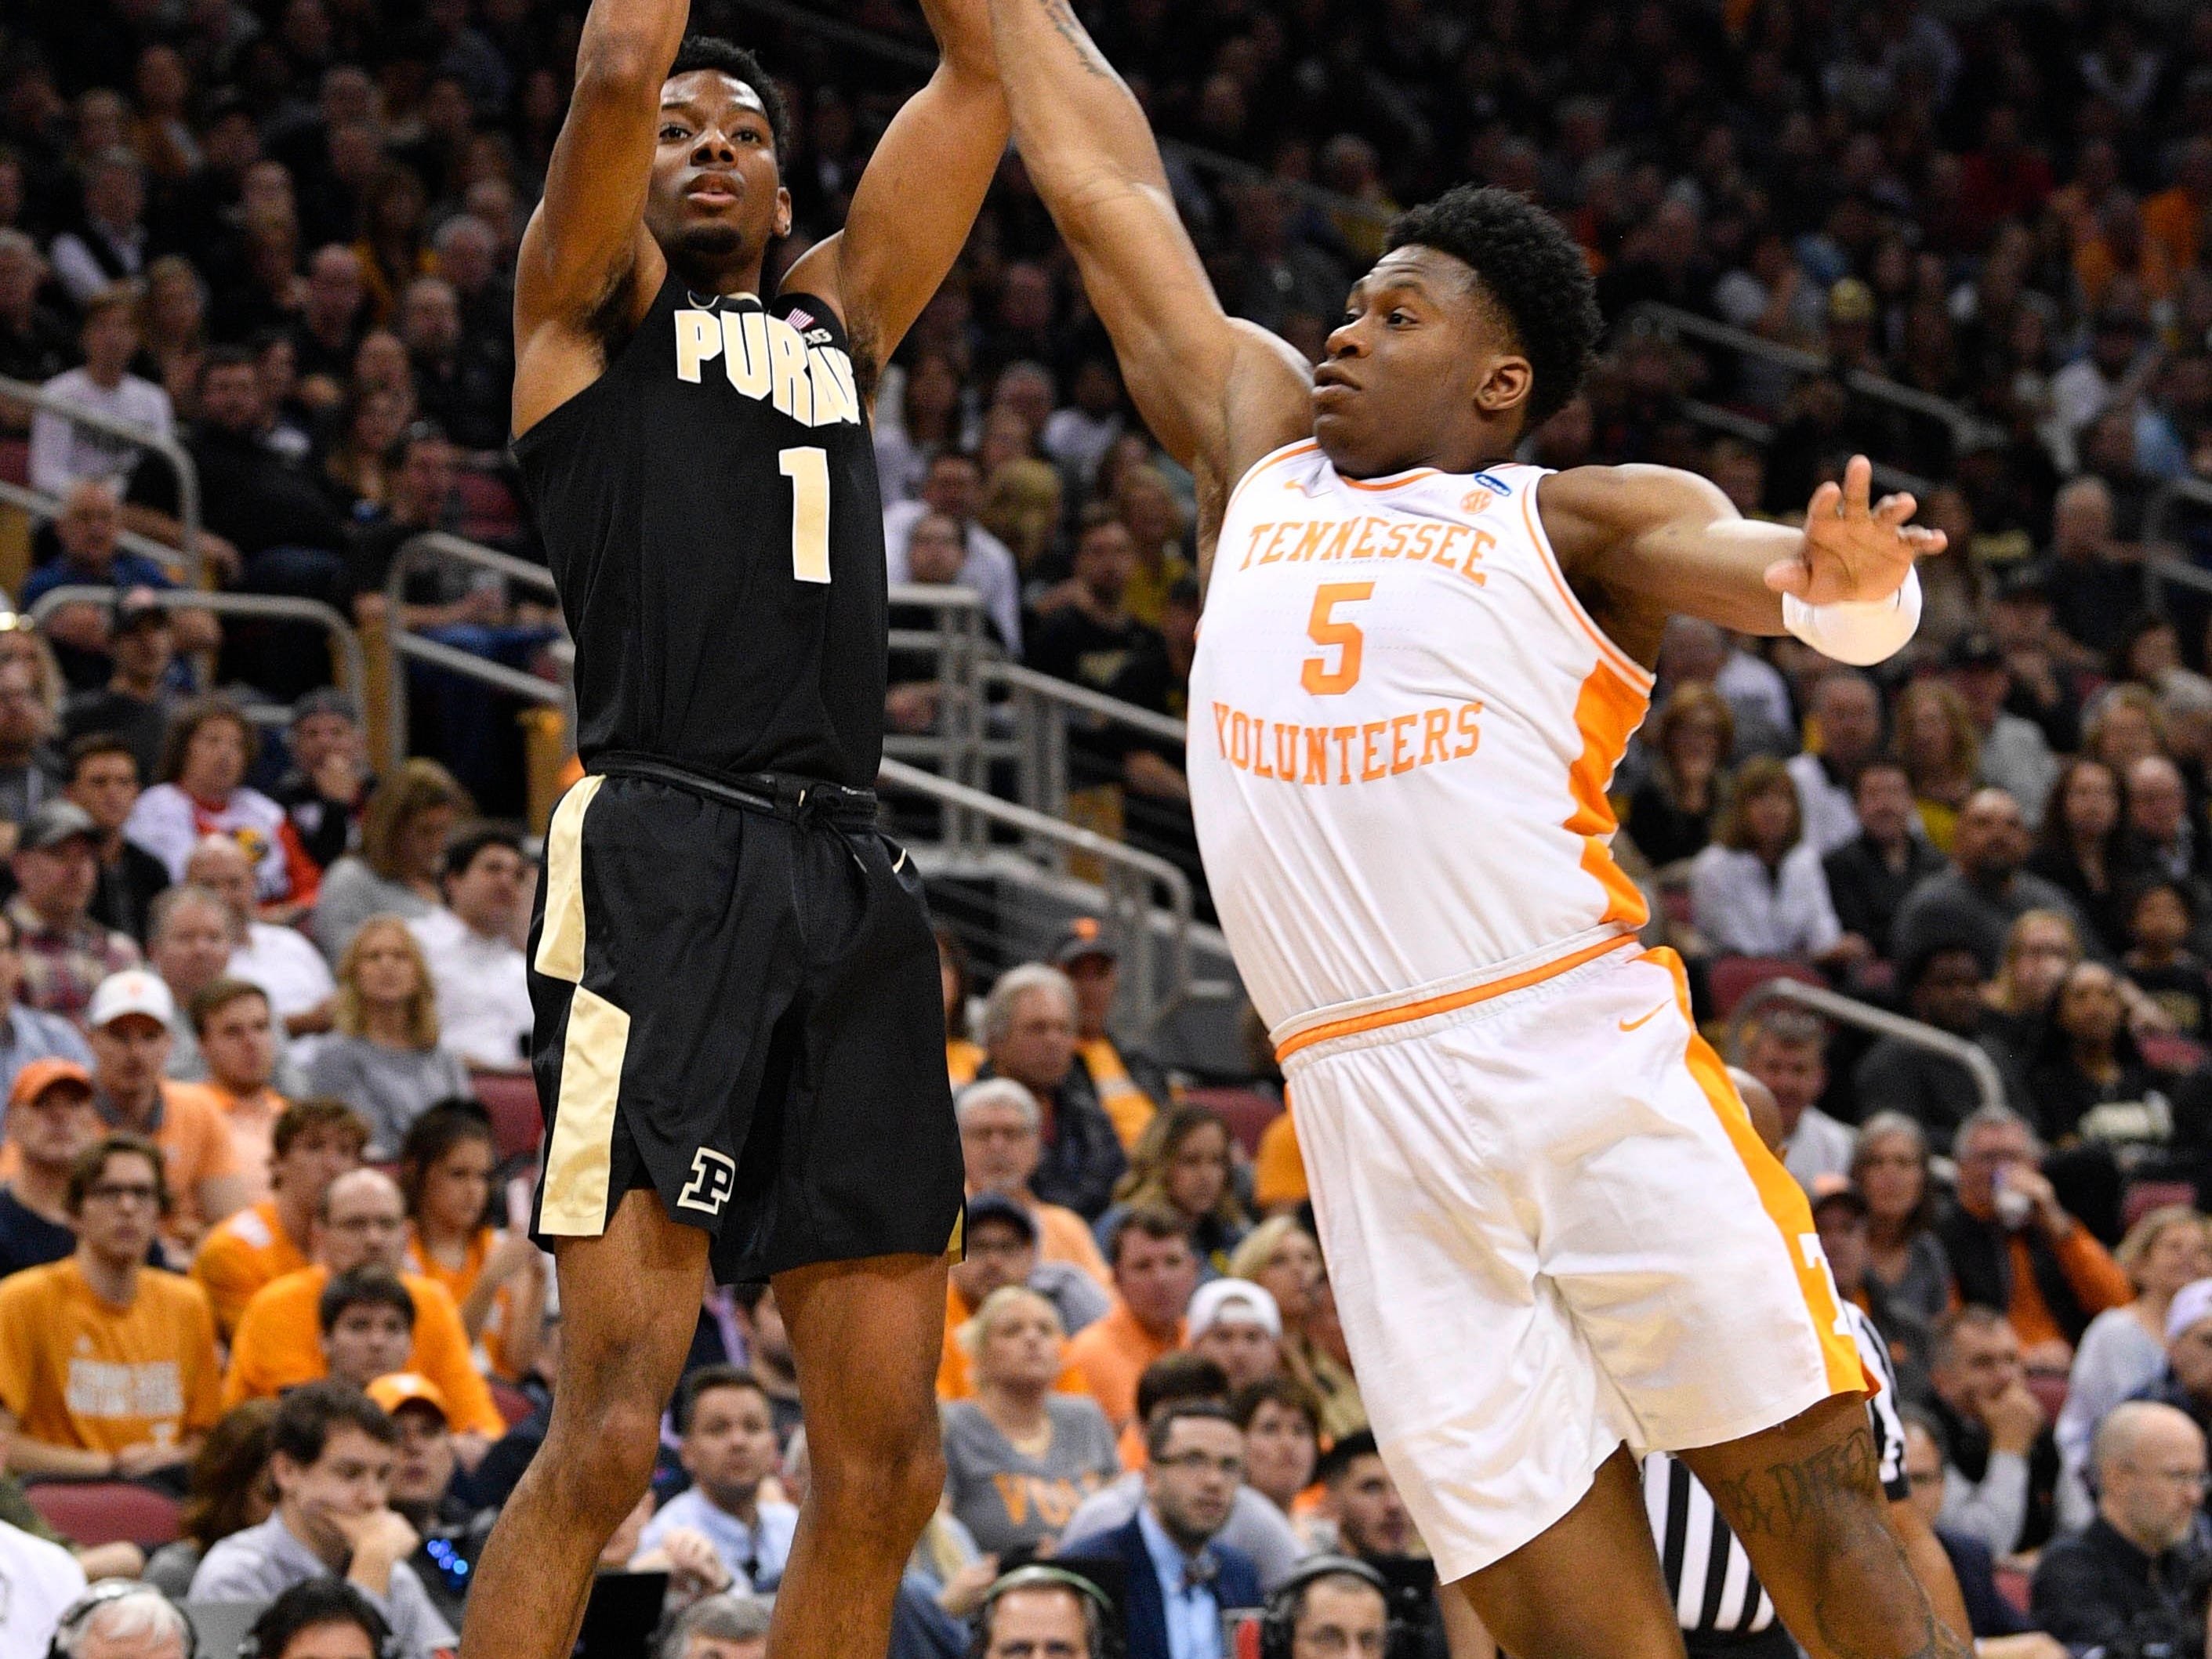 Mar 28, 2019; Louisville, KY, United States; Purdue Boilermakers forward Aaron Wheeler (1) shoots as Tennessee Volunteers guard Admiral Schofield (5) defends during the first half in the semifinals of the south regional of the 2019 NCAA Tournament at KFC Yum Center. Mandatory Credit: Jamie Rhodes-USA TODAY Sports